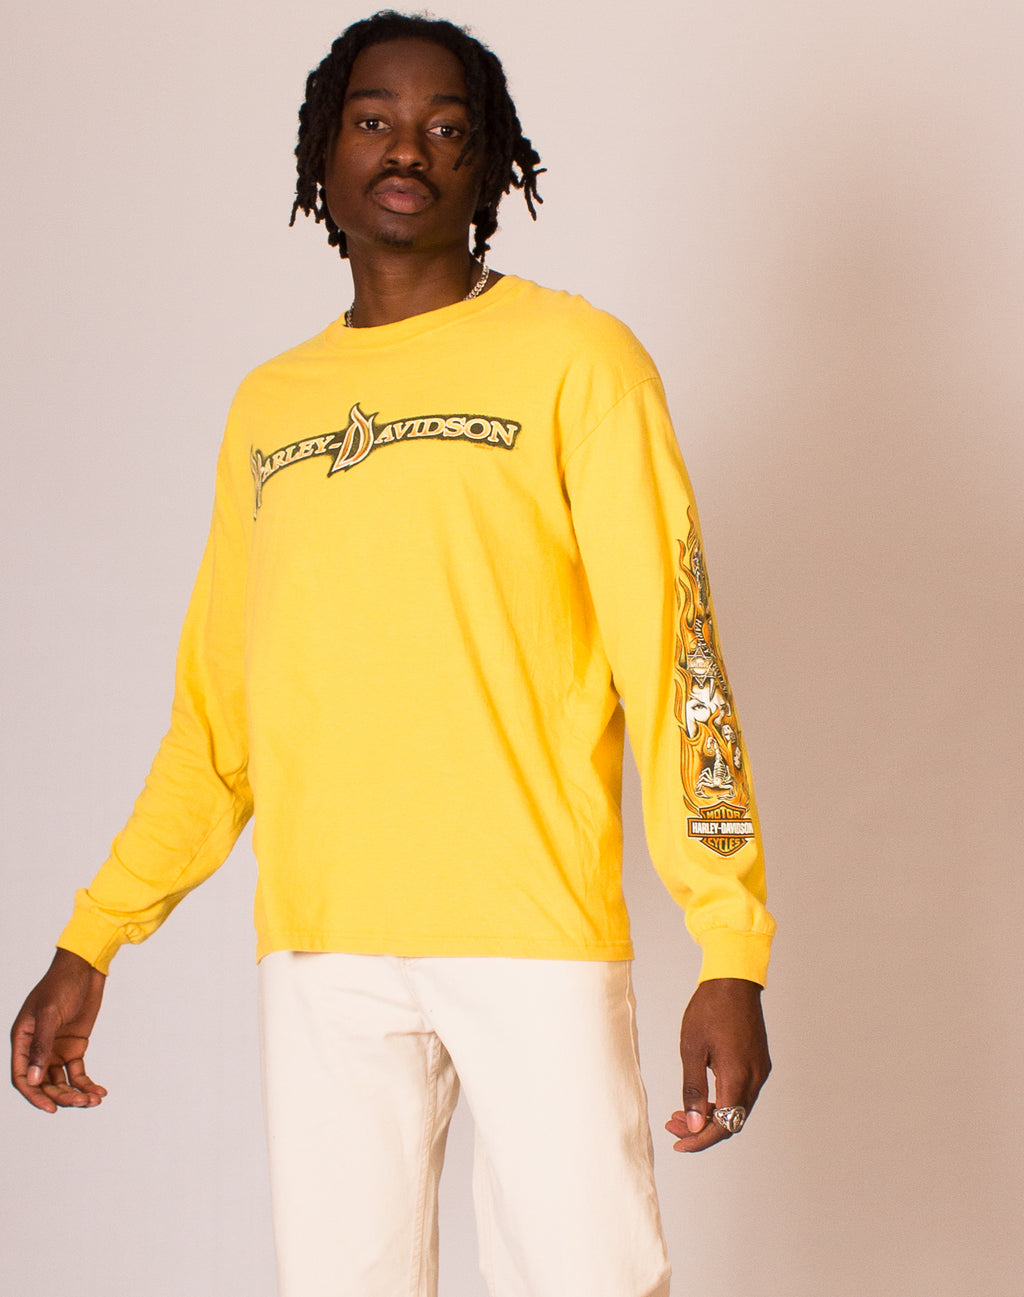 HARLEY DAVIDSON YELLOW LONG SLEEVE TEE